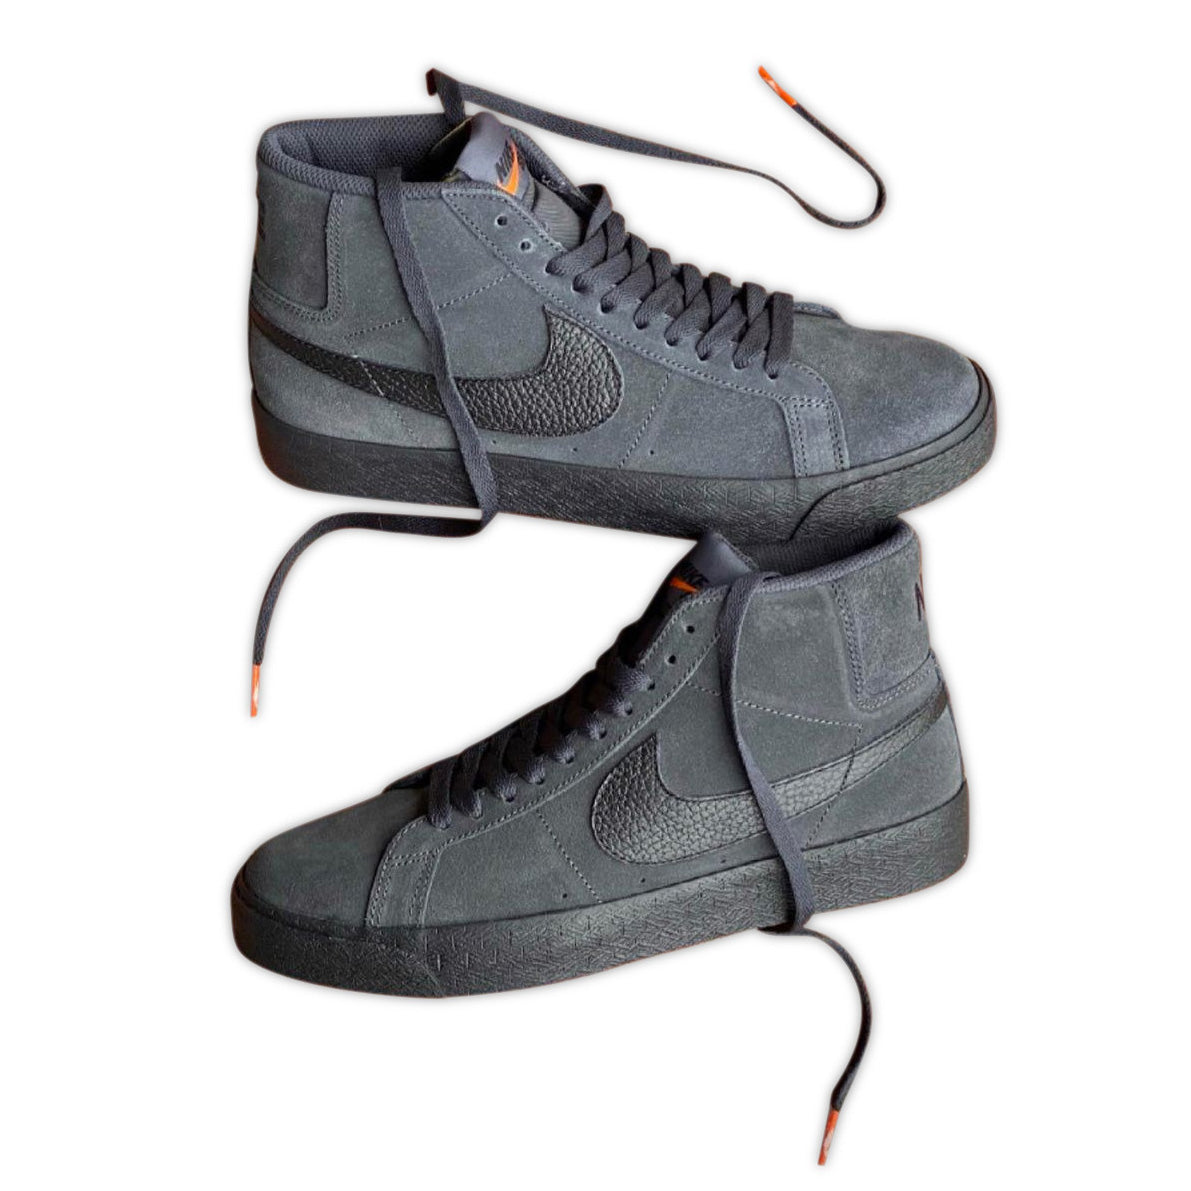 BLAZER MID ORANGE LABEL DARK SMOKE GREY